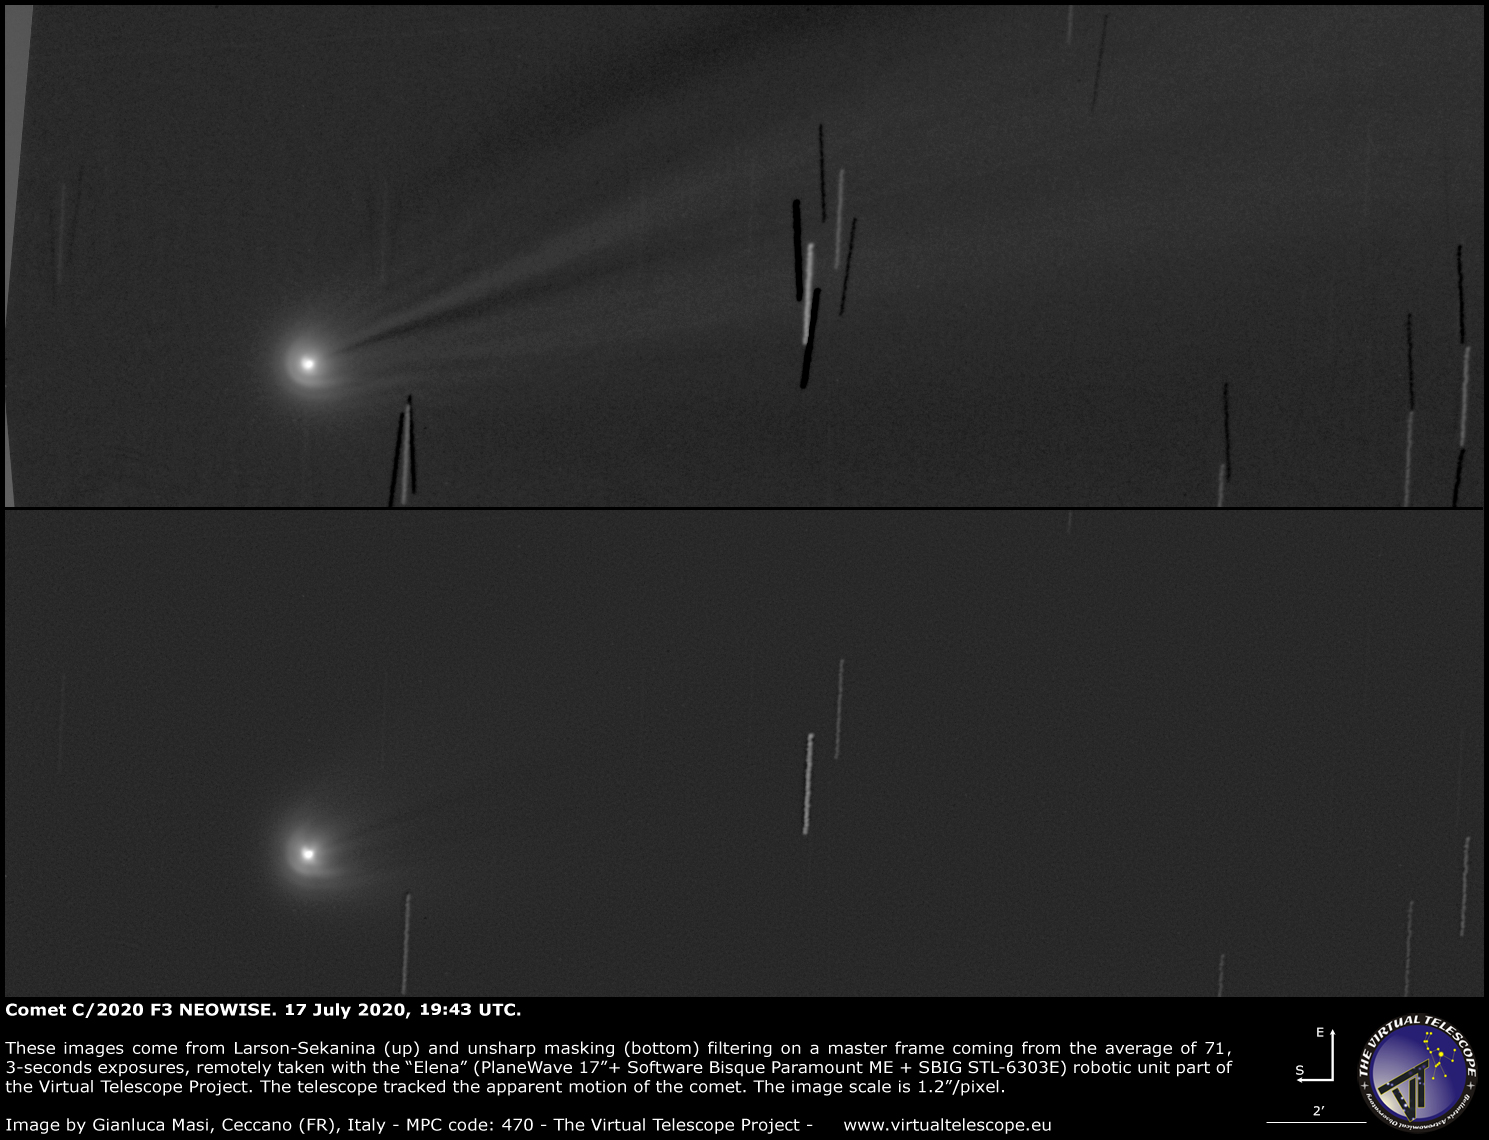 Comet C/2020 F3 NEOWISE: a close-up - 17 July 2020.